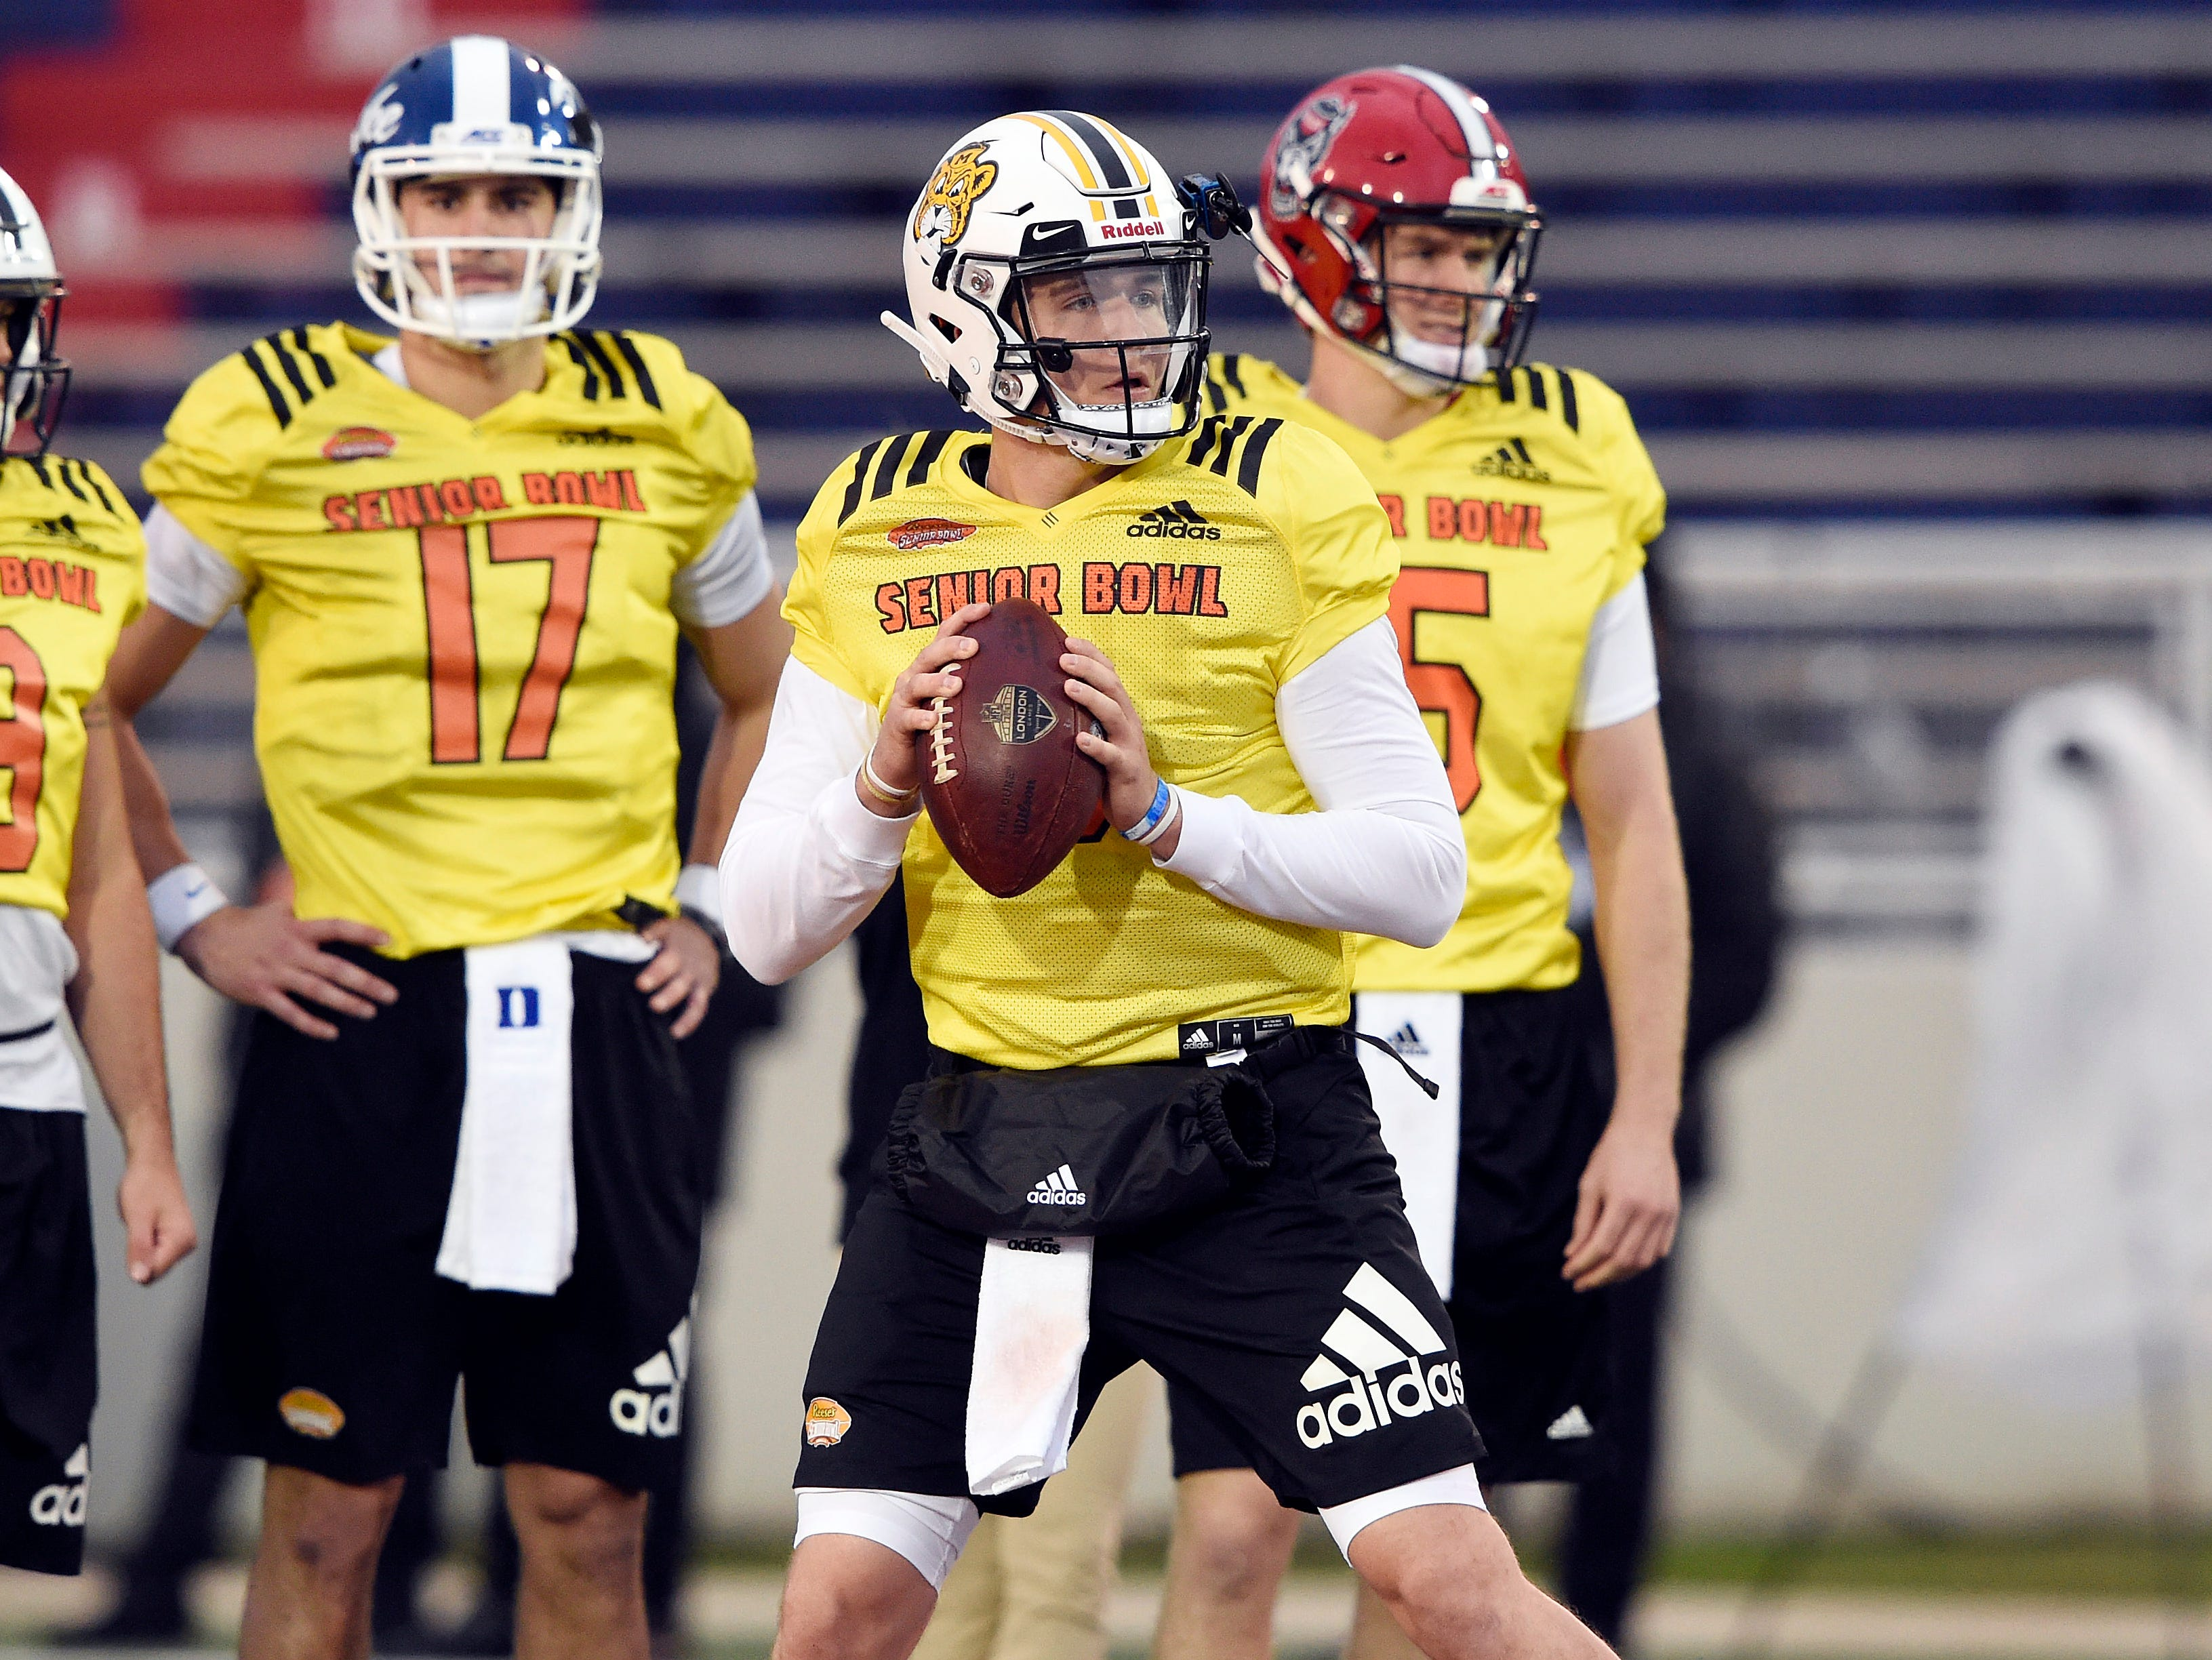 Drew Lock of Missouri drops back to pass during the North squad practice at the Senior Bowl.